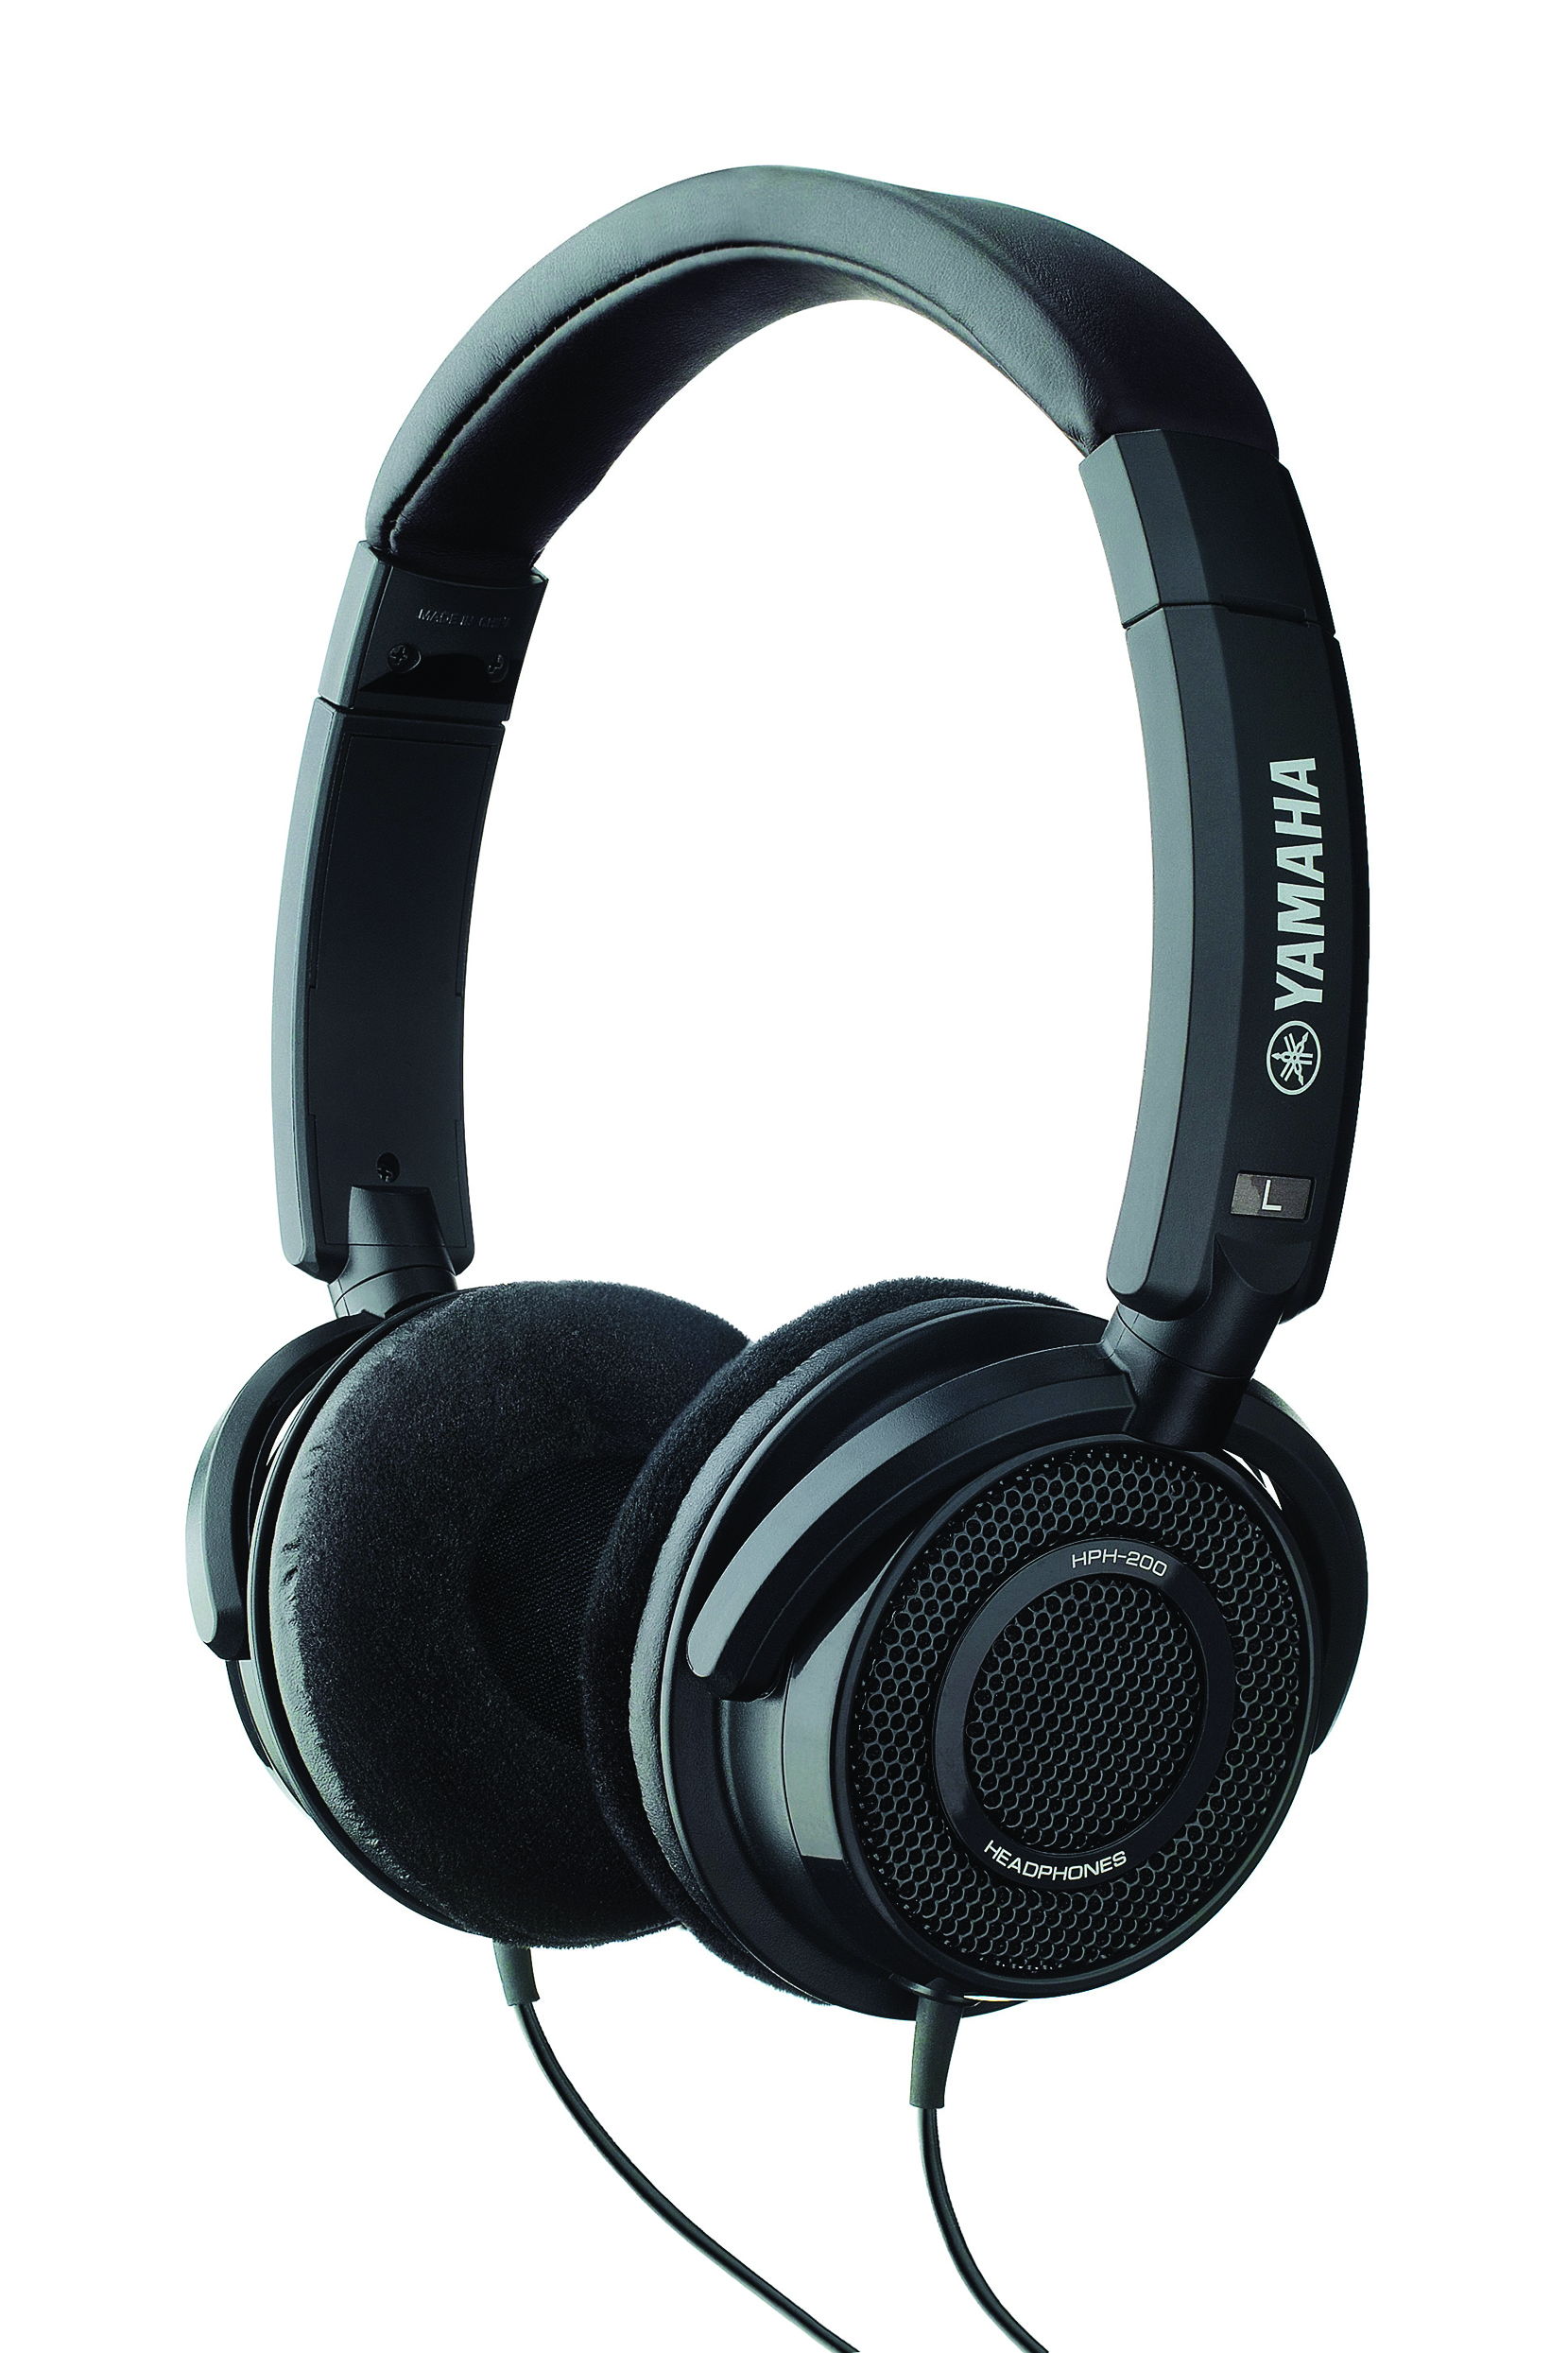 Yamaha HPH-200 Headphones.    Light and supremely comfortable, with a rich and detailed sound, these are the headphones we reach for when lumbered with having to wear cans all day. Under £100.